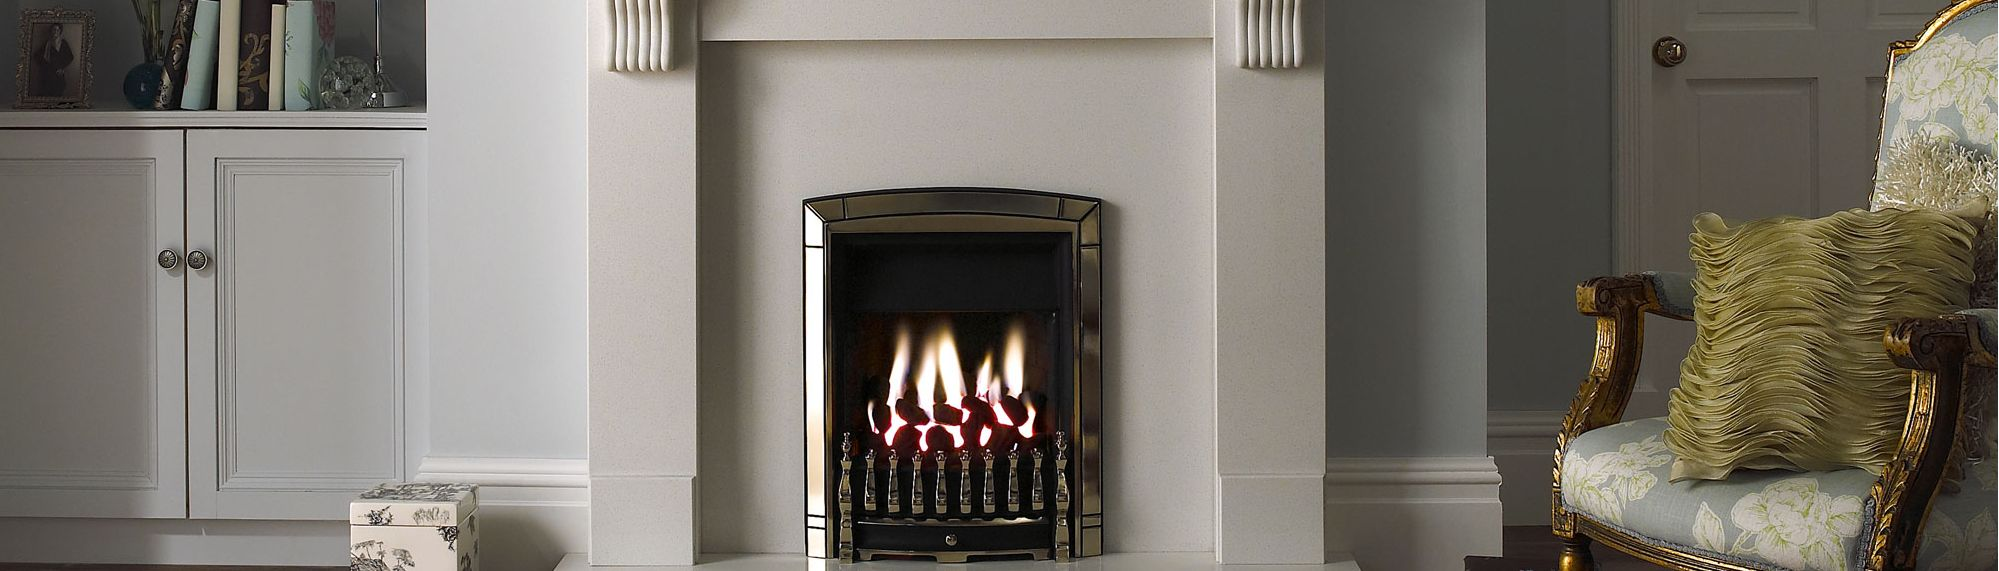 Fireplace Banner